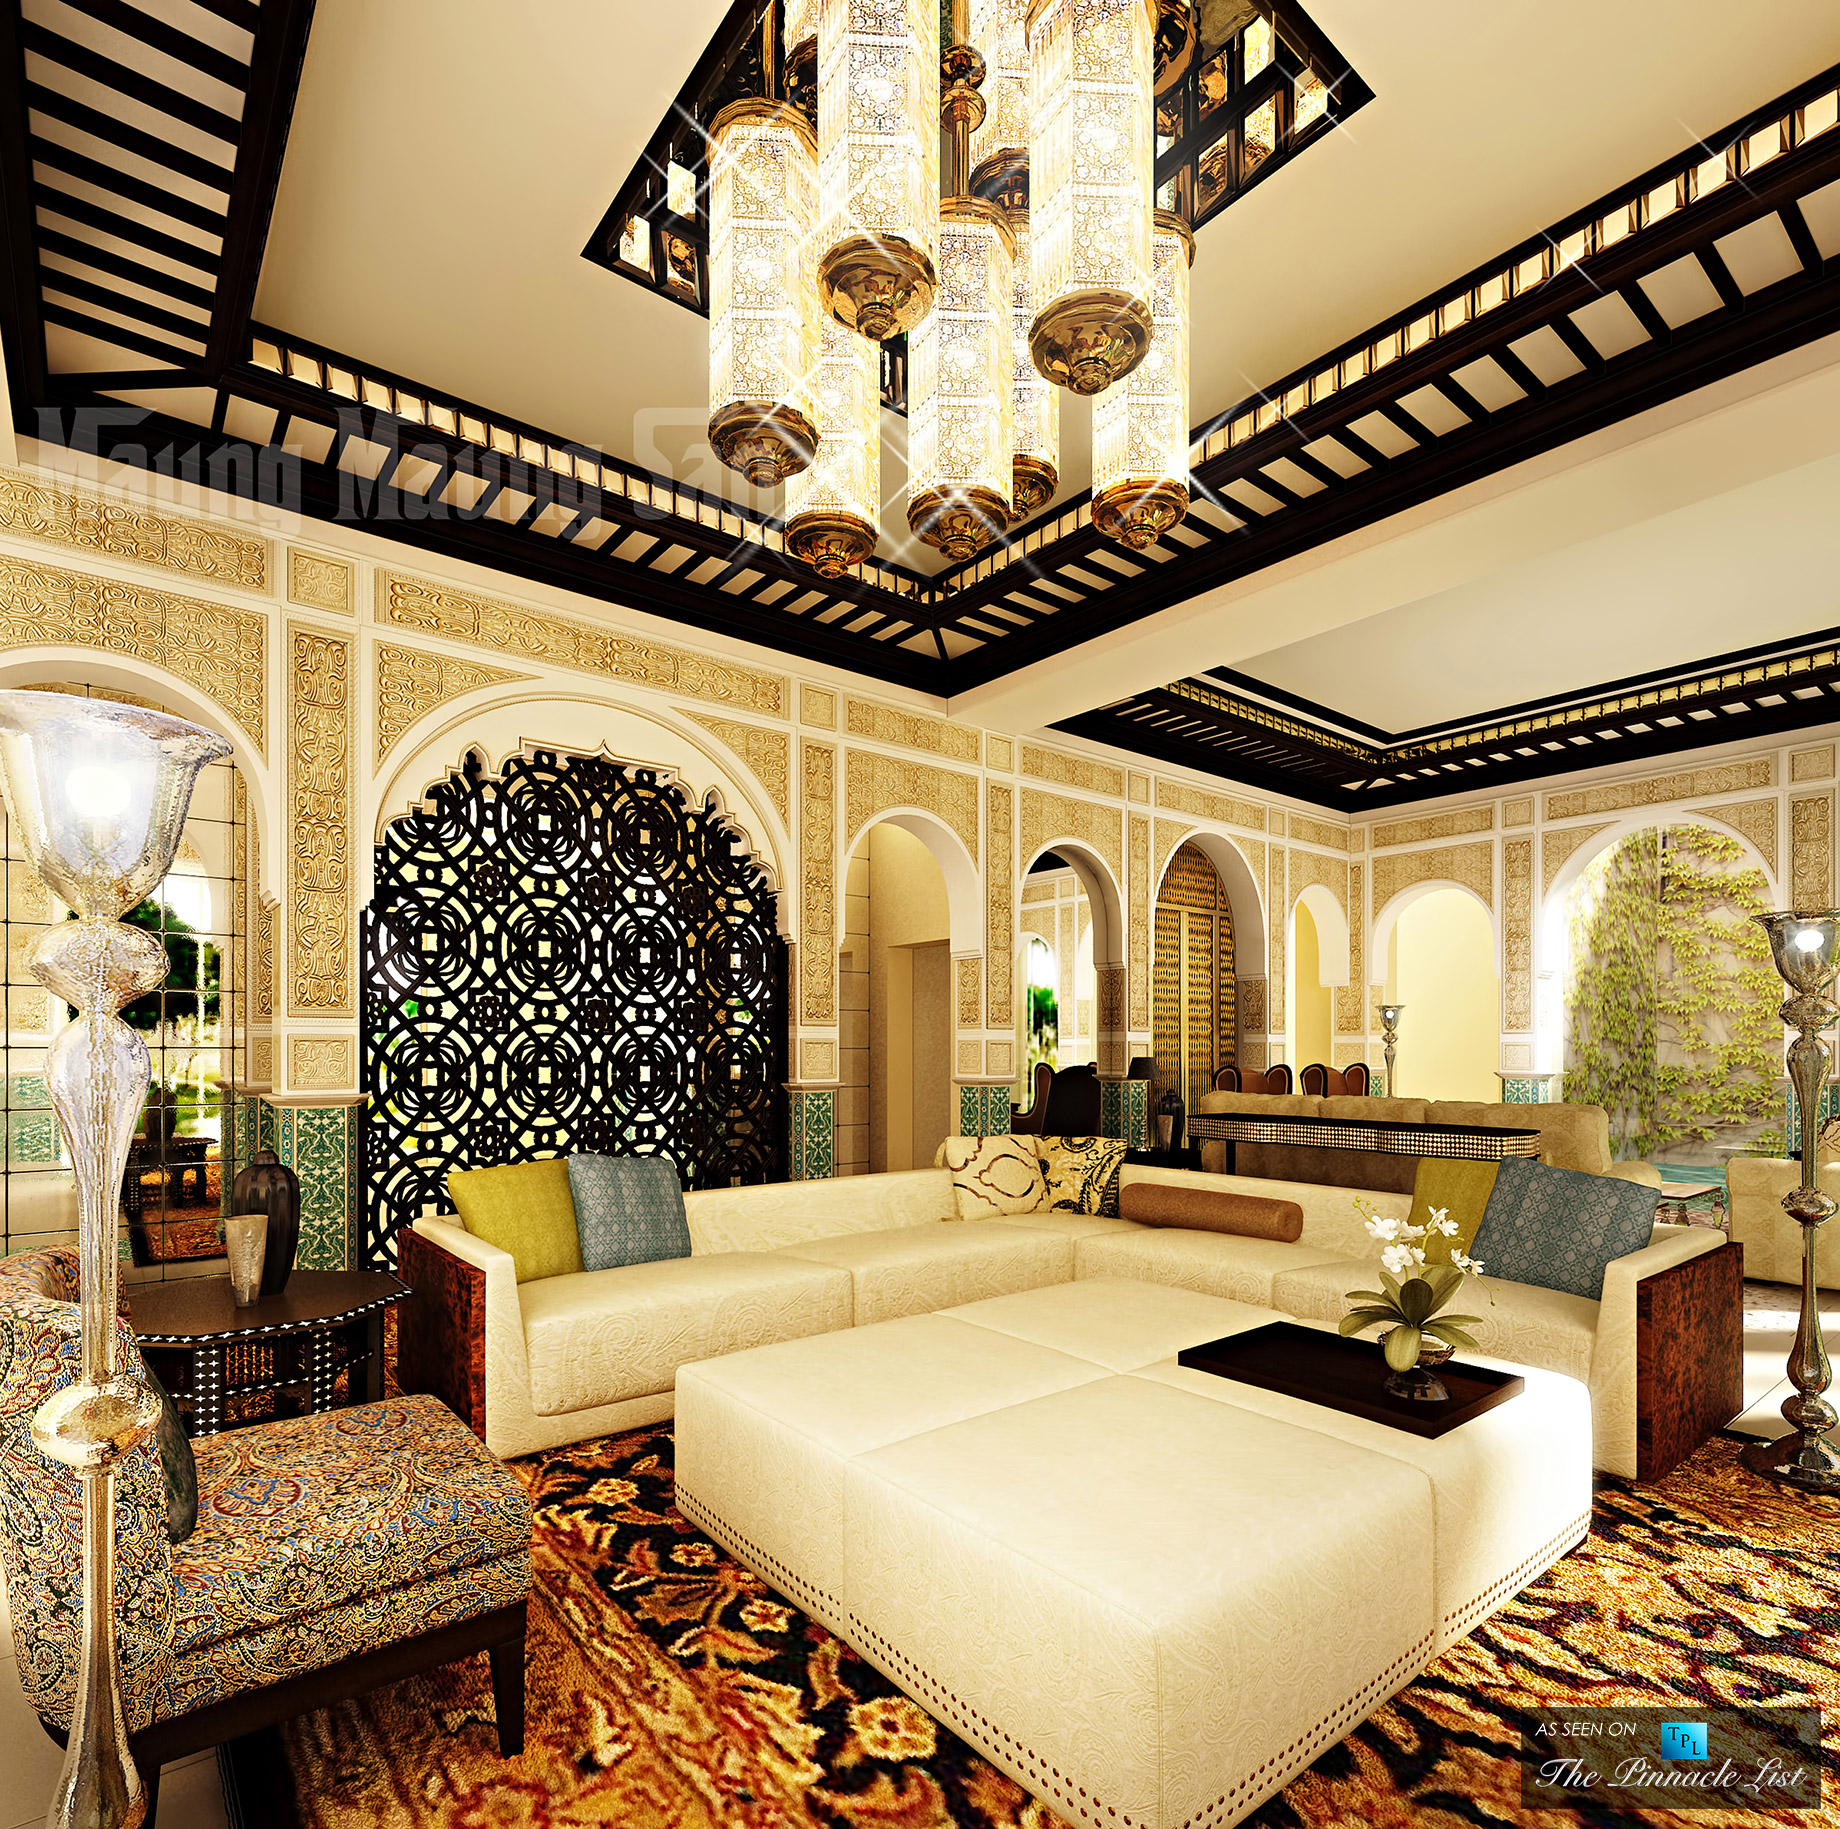 Moroccan Influences - Luxury West Coast Design Trends that Make Your Home Into a Multicultural Melting Pot